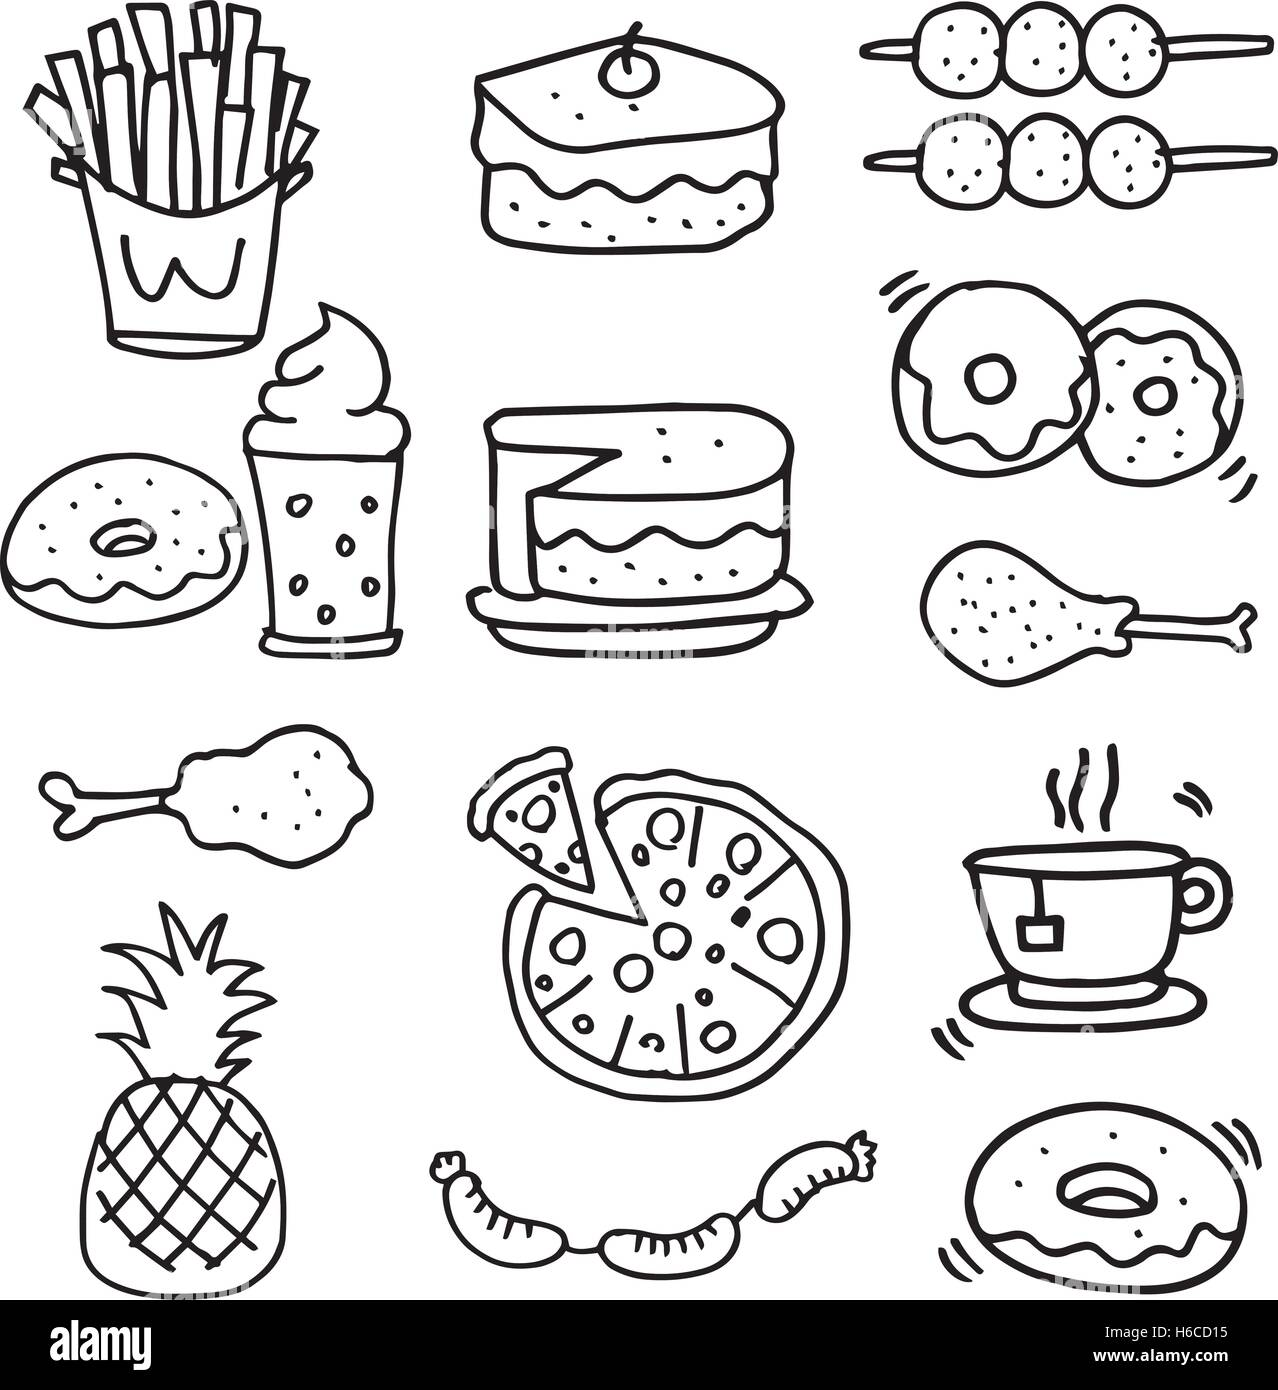 Shopping Food Plate Worksheet